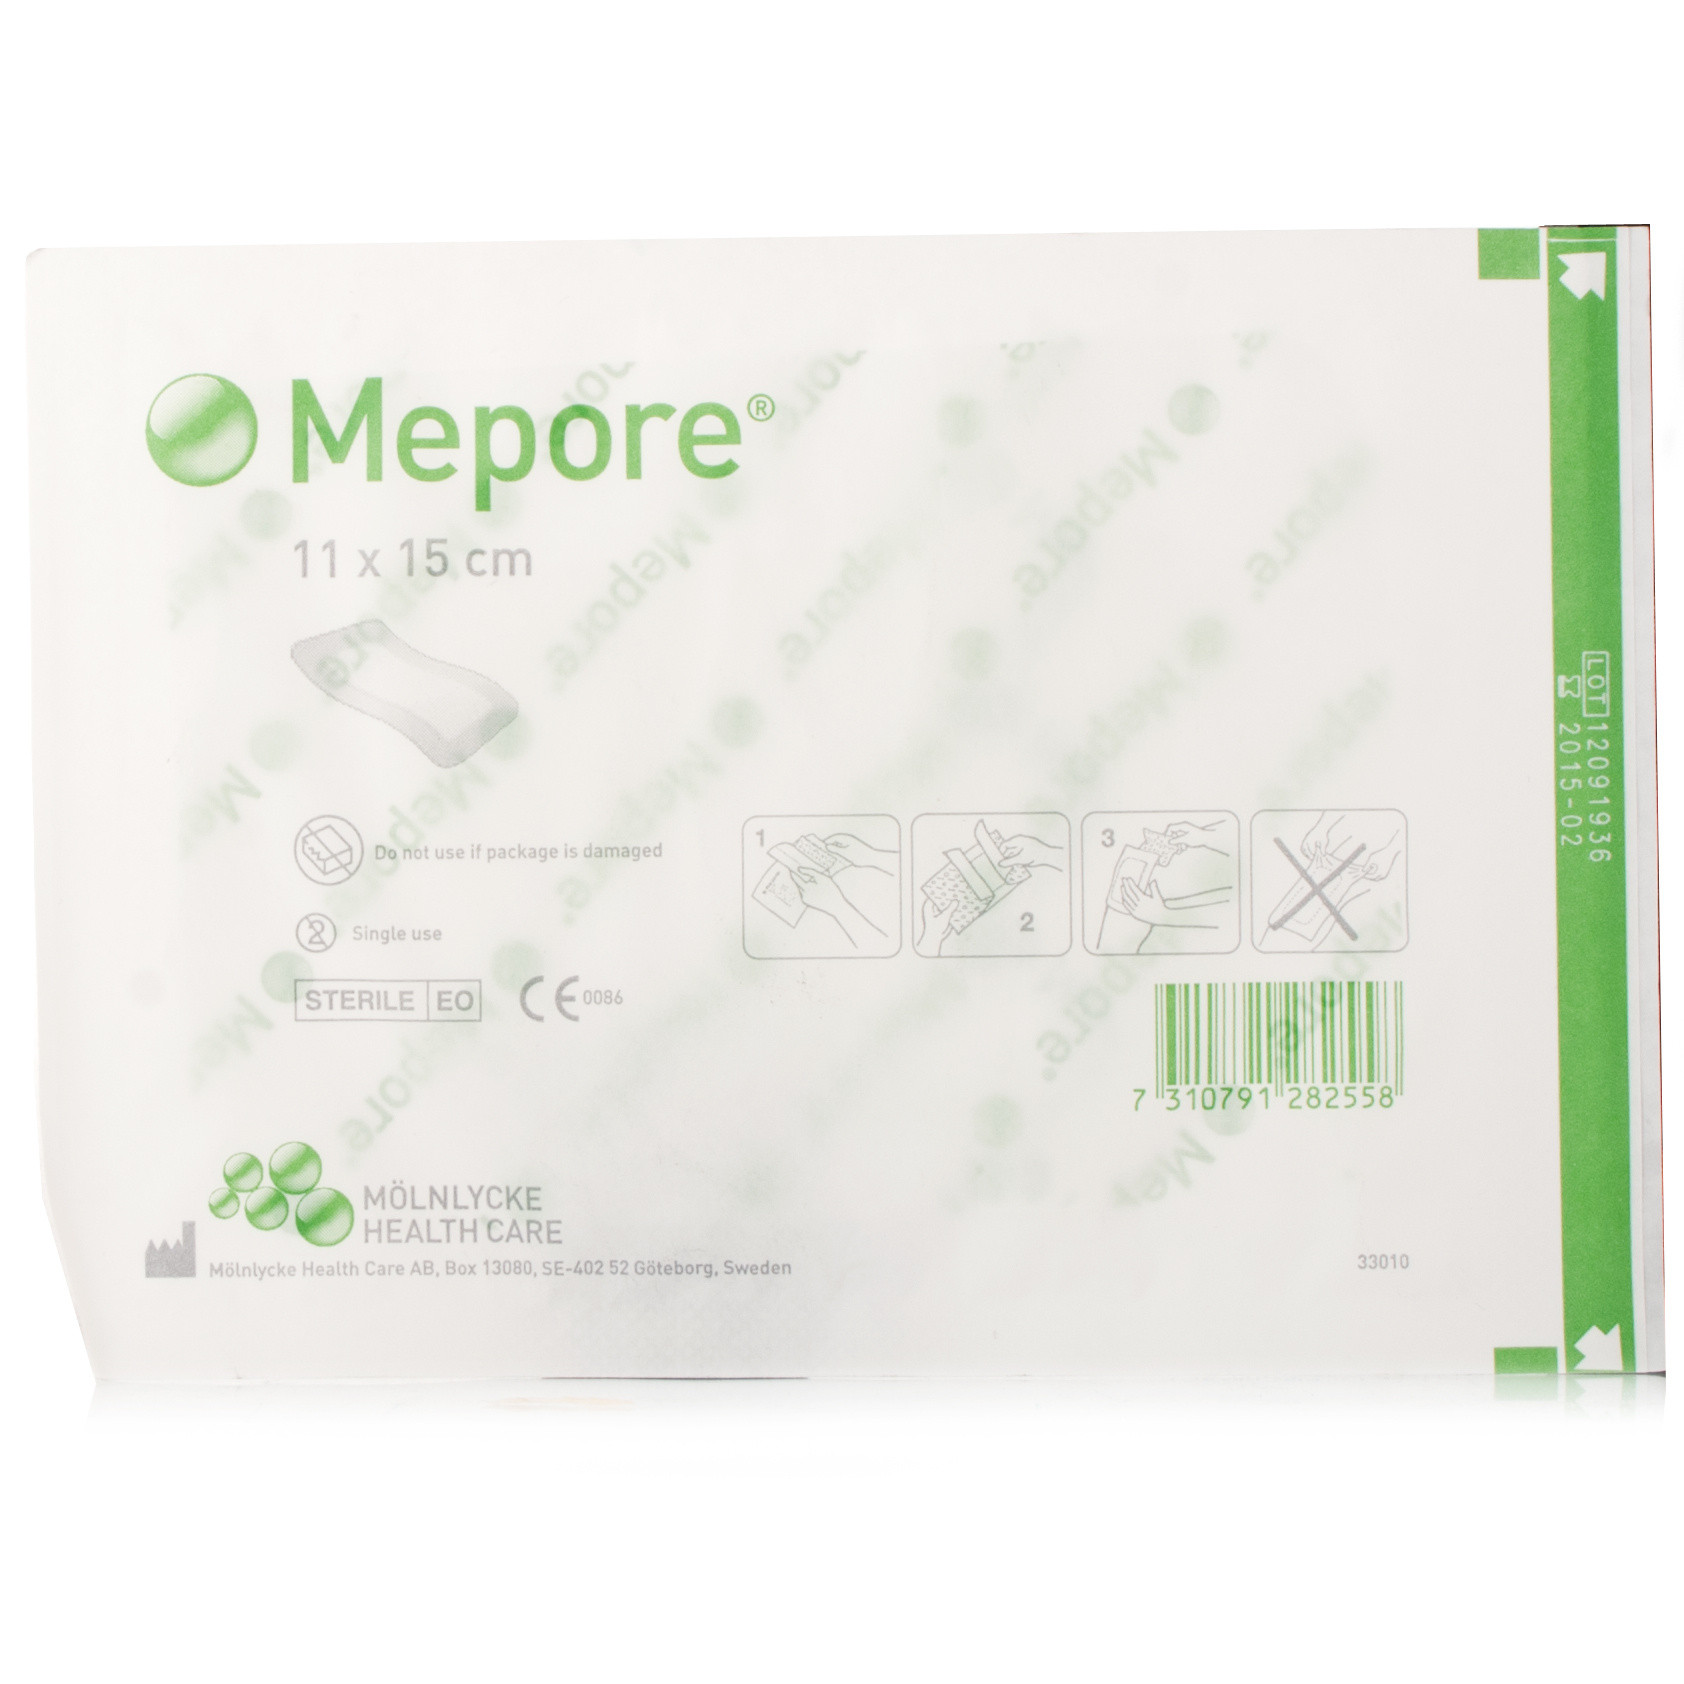 Mepore Self-Adhesive Dressing 11x15cm - 40 Pack